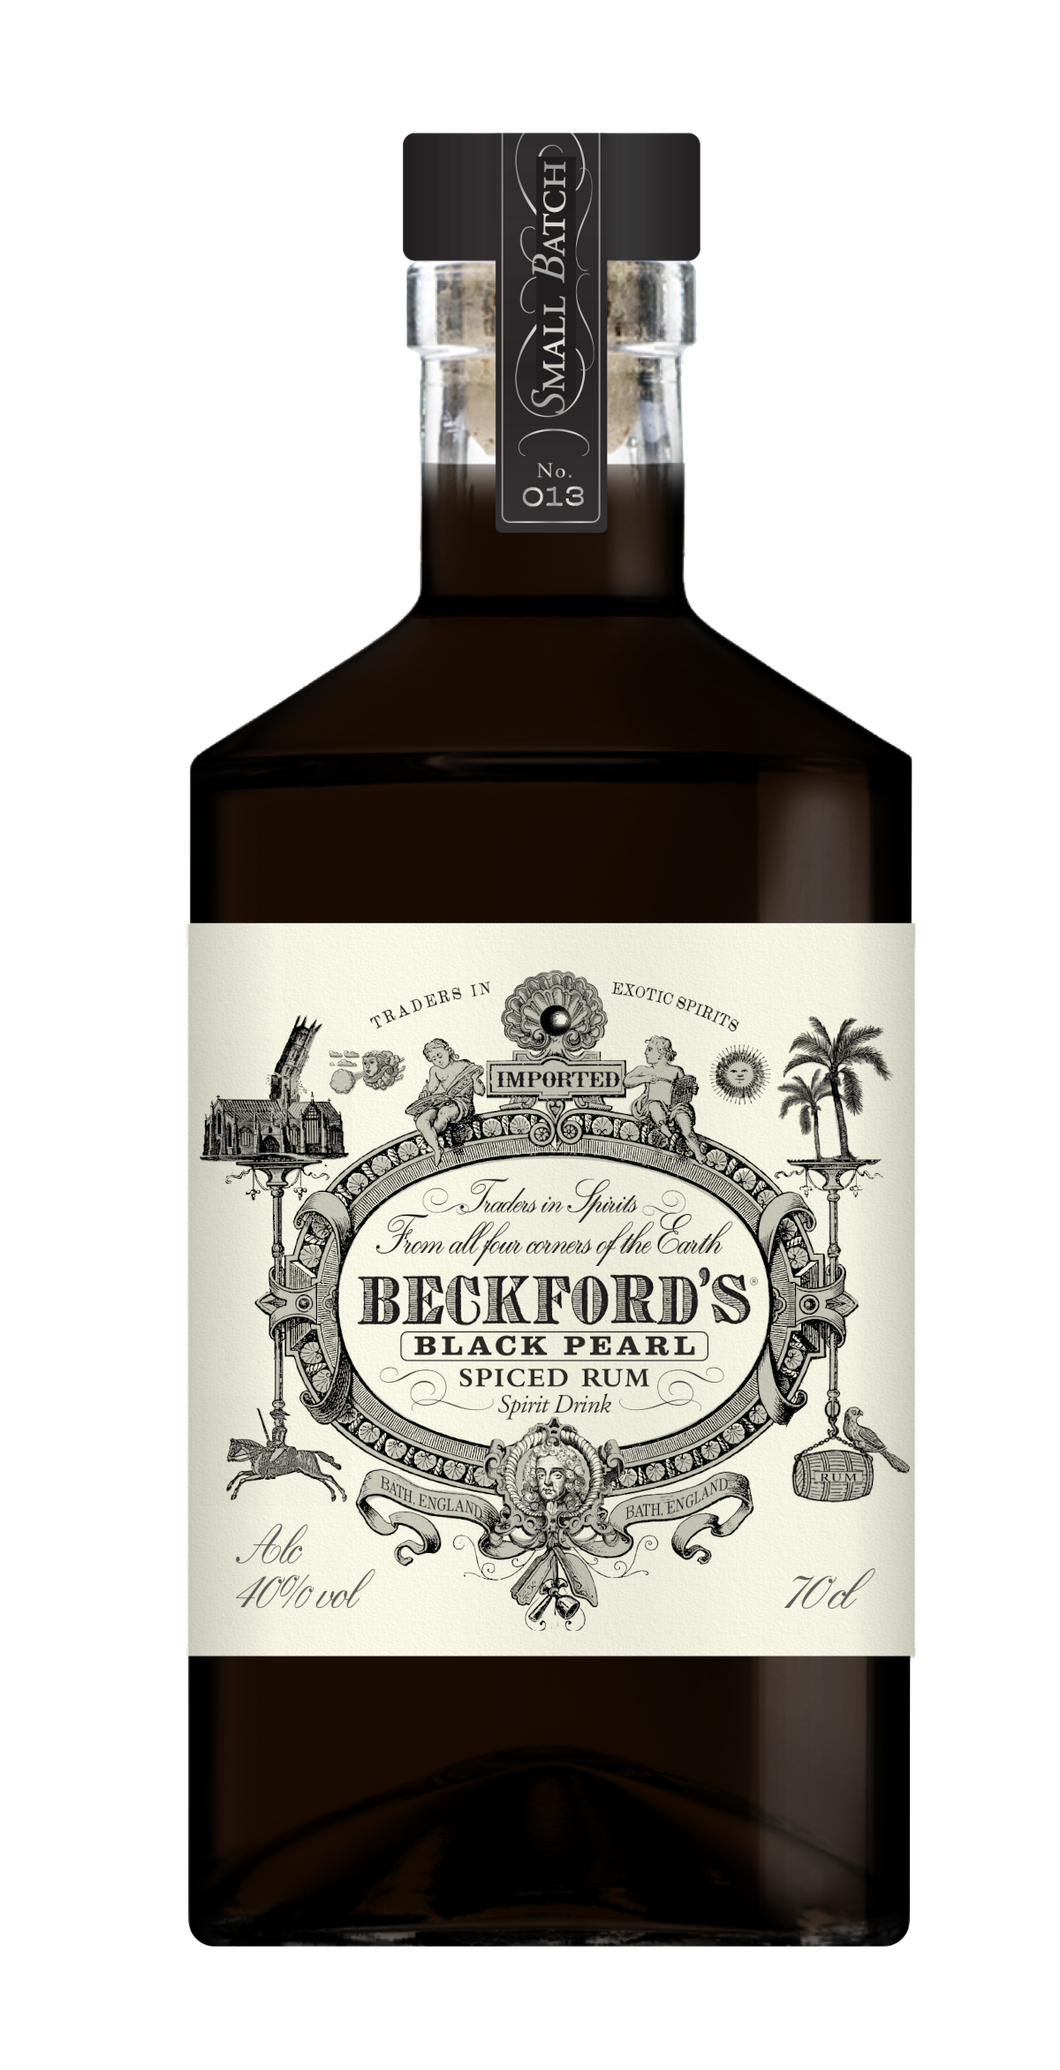 Beckford's Black Pearl-Spiced Rum